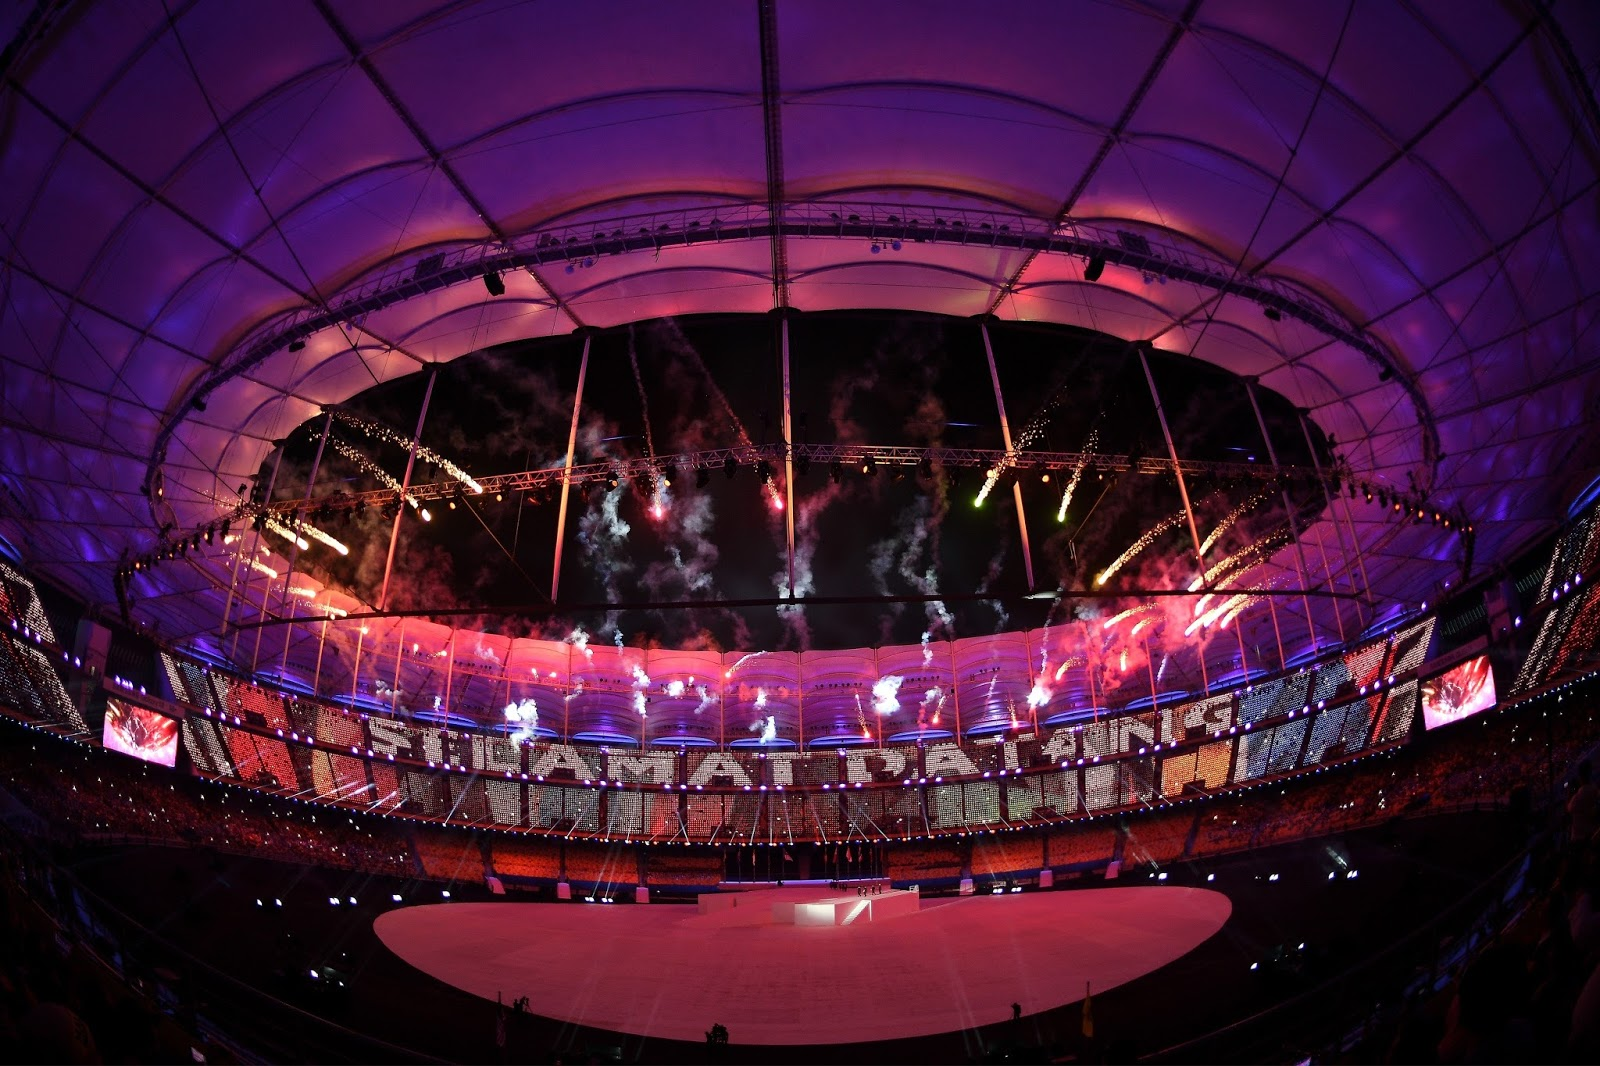 Asian games opening ceremony video can discussed